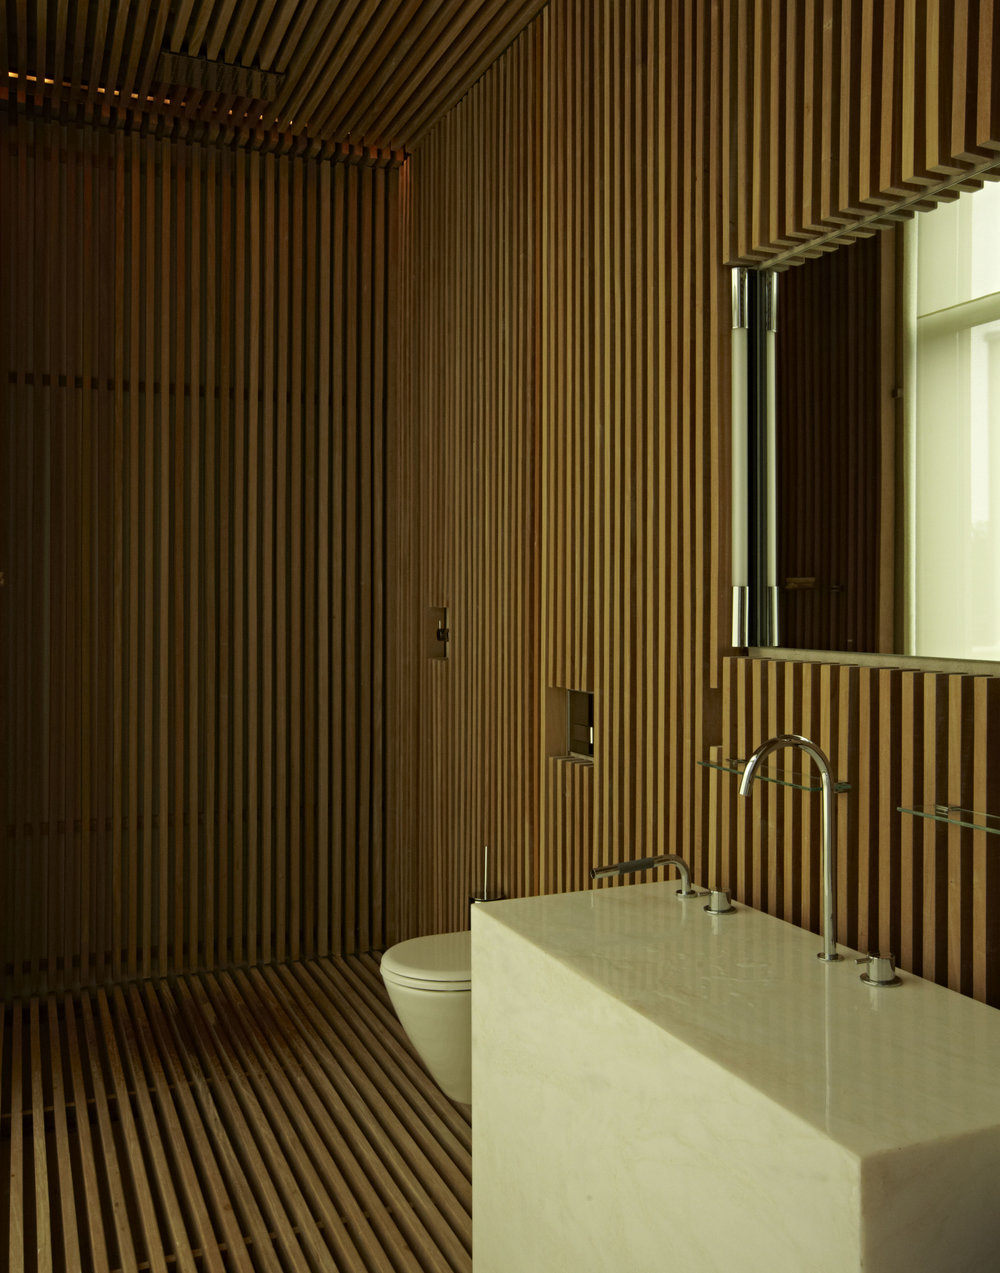 Bridgehampton wood slat bathroom